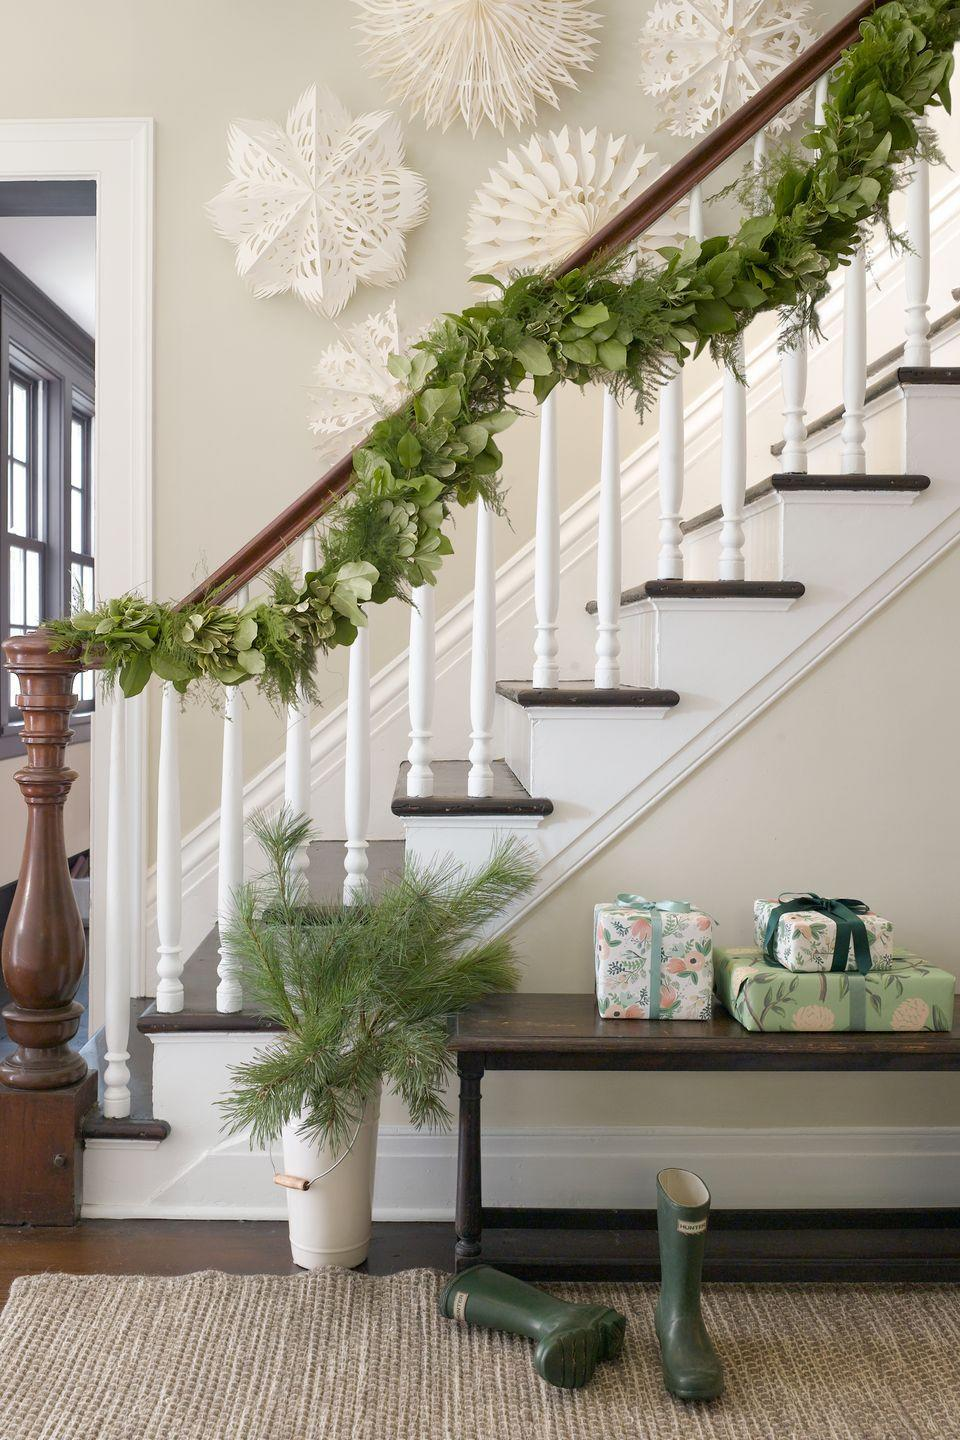 """<p>A handmade garland and giant paper snowflakes welcome guests with the holiday spirit. If you'd like, get creative with interesting details like feathers or pinecones tied with a gingham bow to the garland.</p><p><a class=""""link rapid-noclick-resp"""" href=""""https://www.amazon.com/s/ref=nb_sb_noss?url=search-alias%3Dgarden&field-keywords=christmas+garland&tag=syn-yahoo-20&ascsubtag=%5Bartid%7C10050.g.1247%5Bsrc%7Cyahoo-us"""" rel=""""nofollow noopener"""" target=""""_blank"""" data-ylk=""""slk:SHOP GARLAND"""">SHOP GARLAND</a><br></p>"""